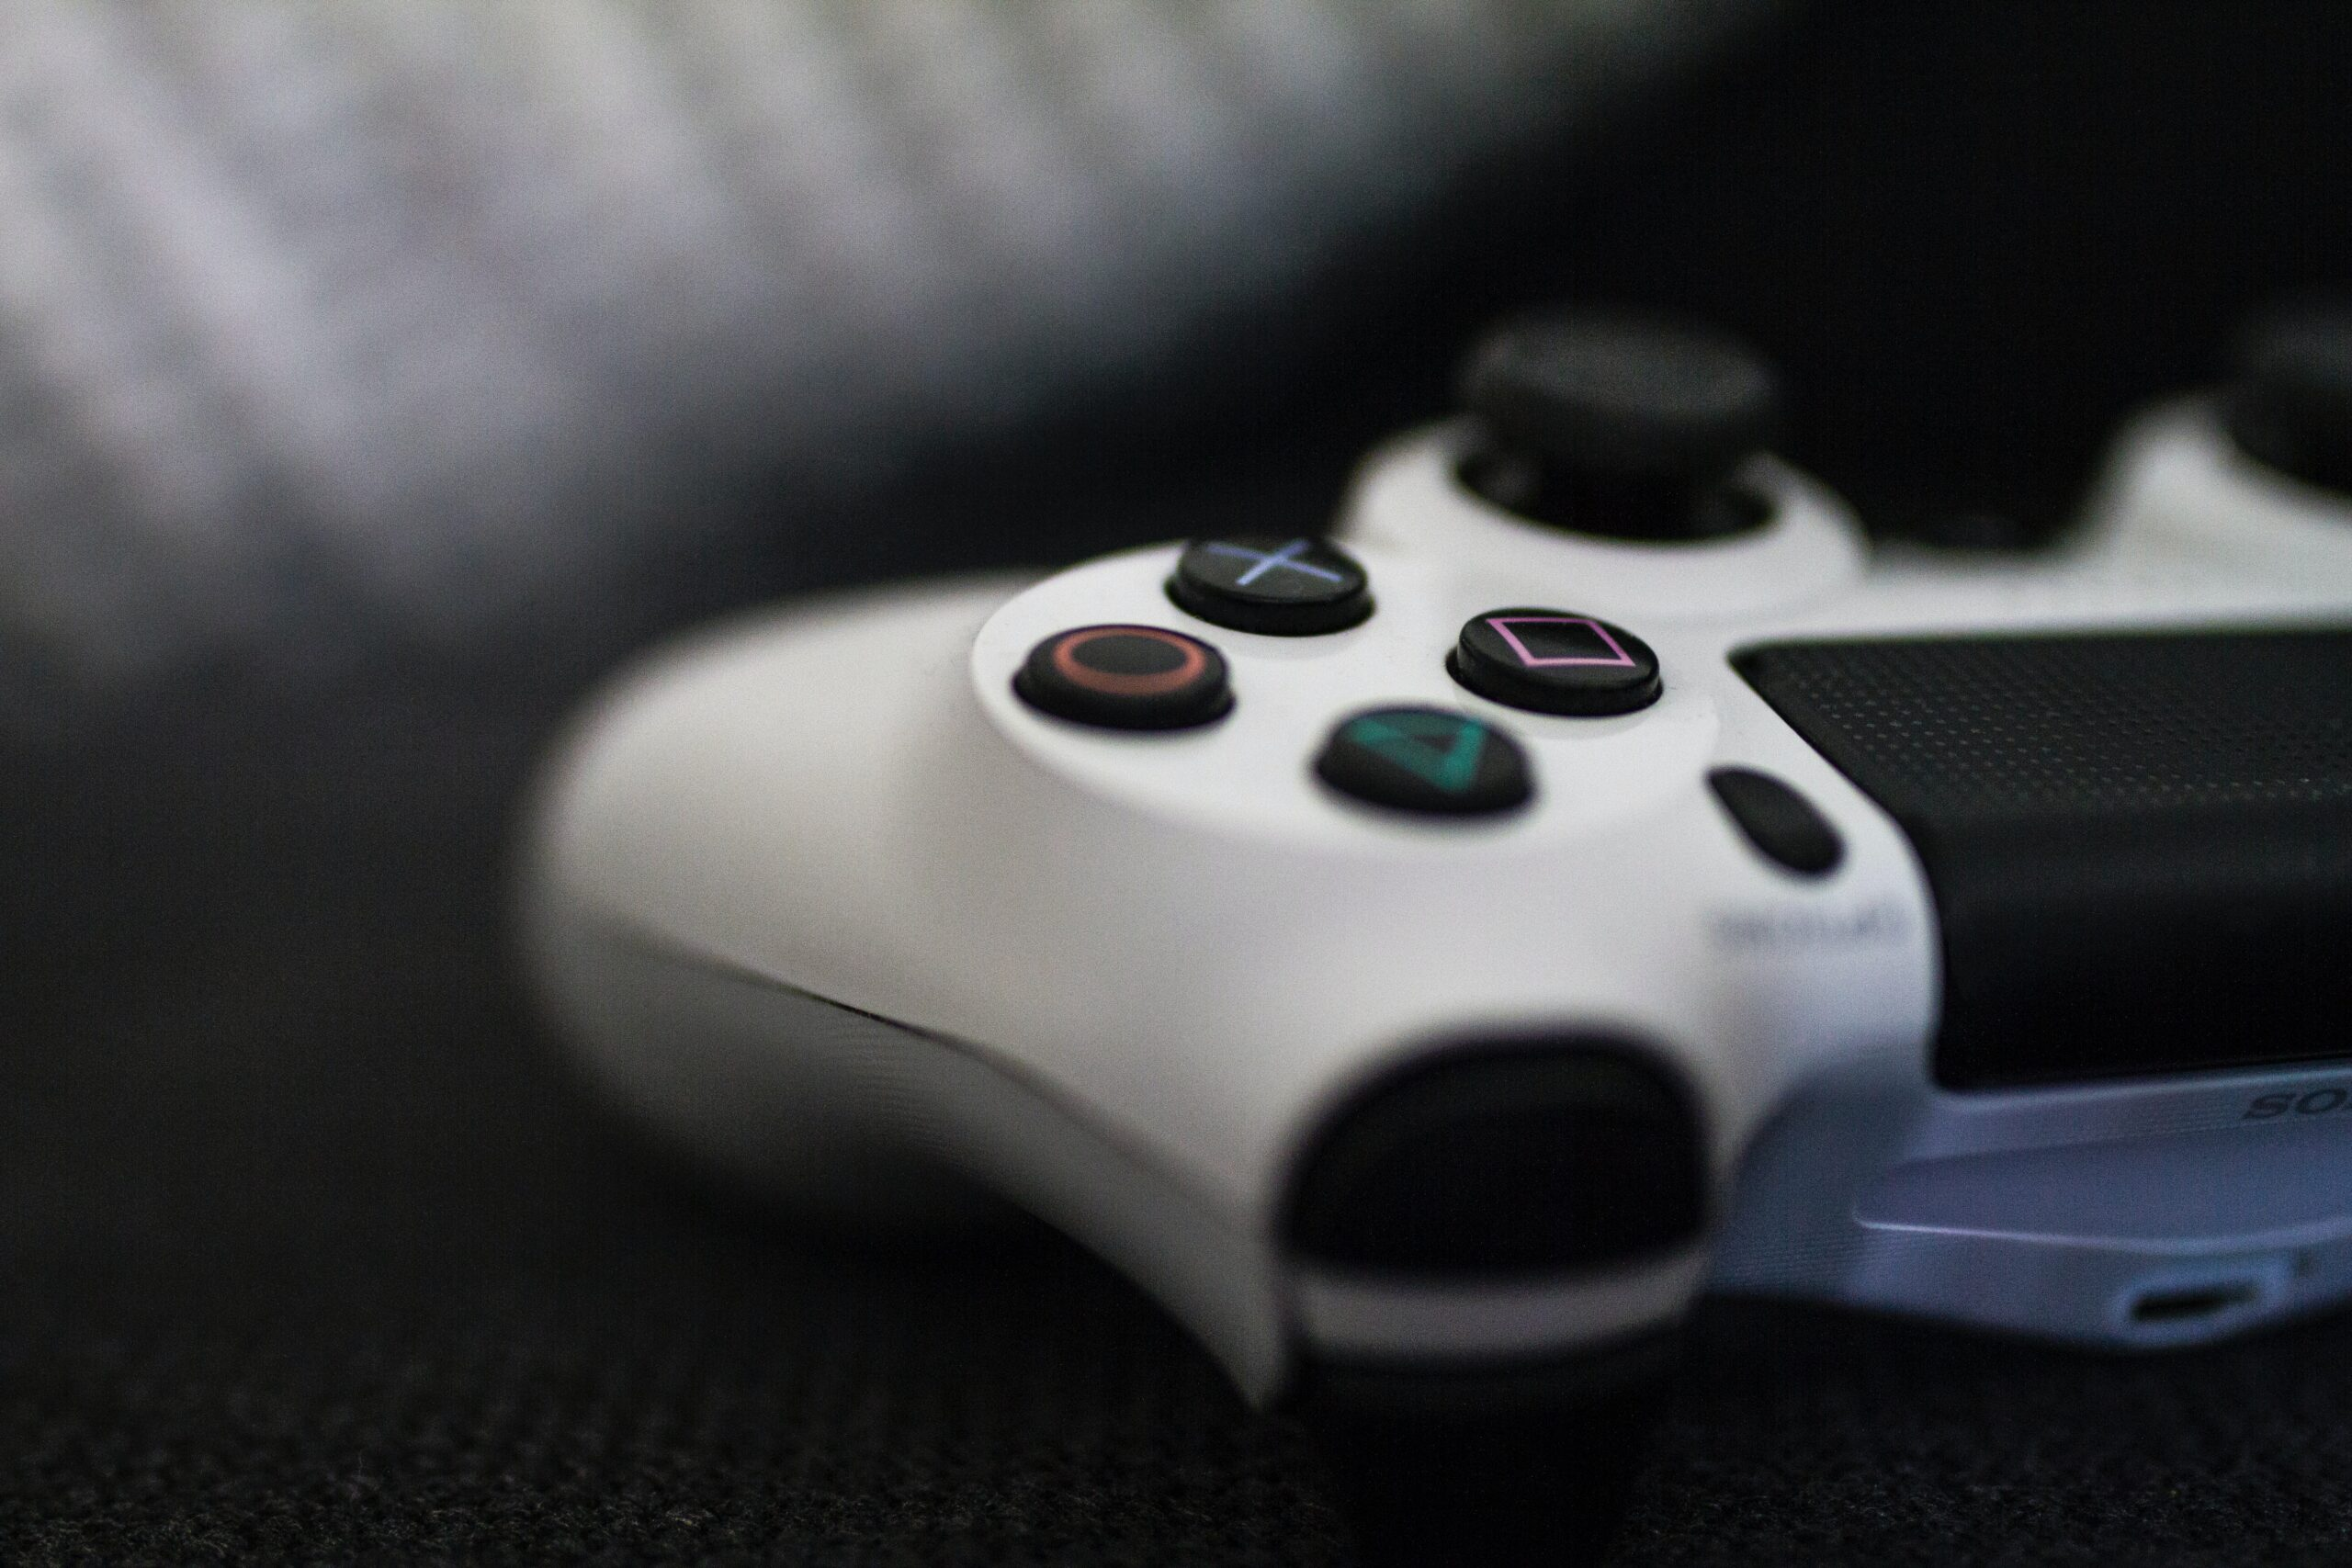 Ways To Sync Ps4 Controller Without Cable